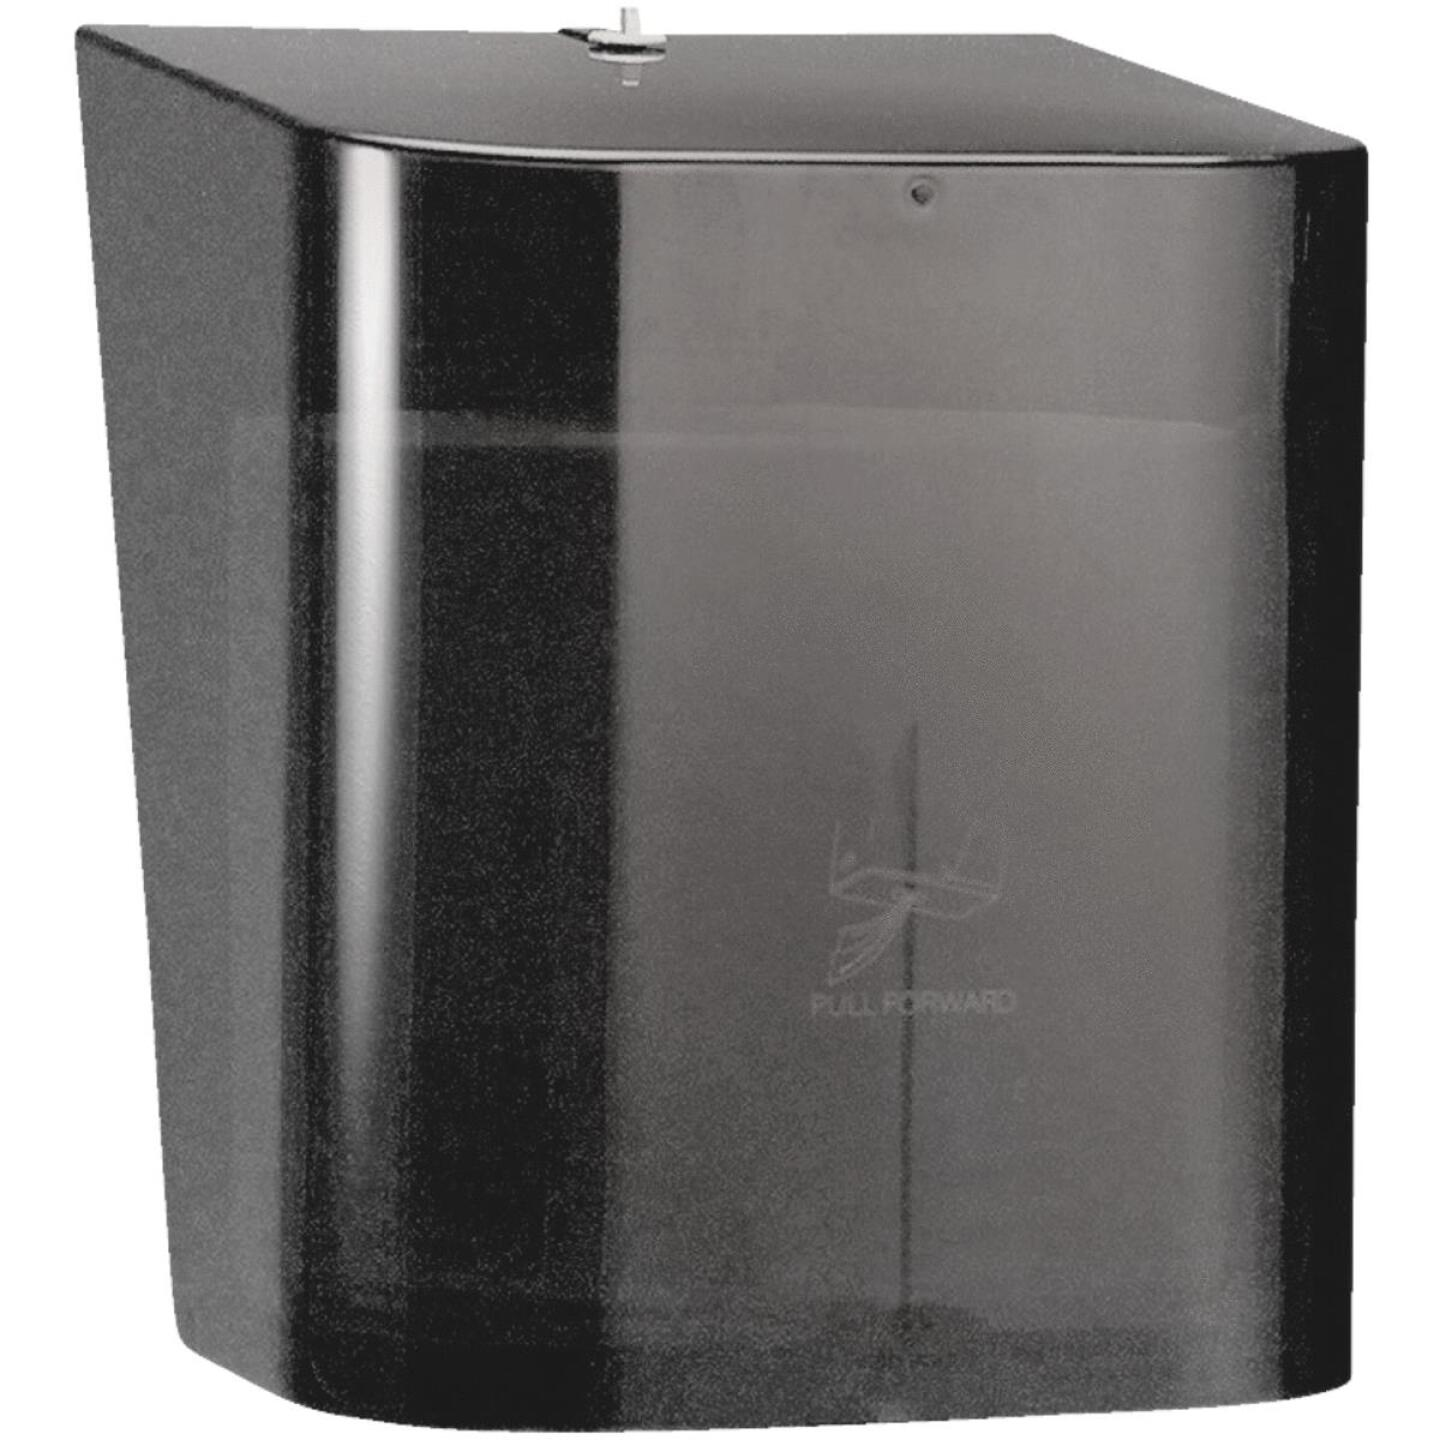 Kimberly Clark Professional In-Sight Center-Pull Smoke Paper Towel Dispenser Image 1